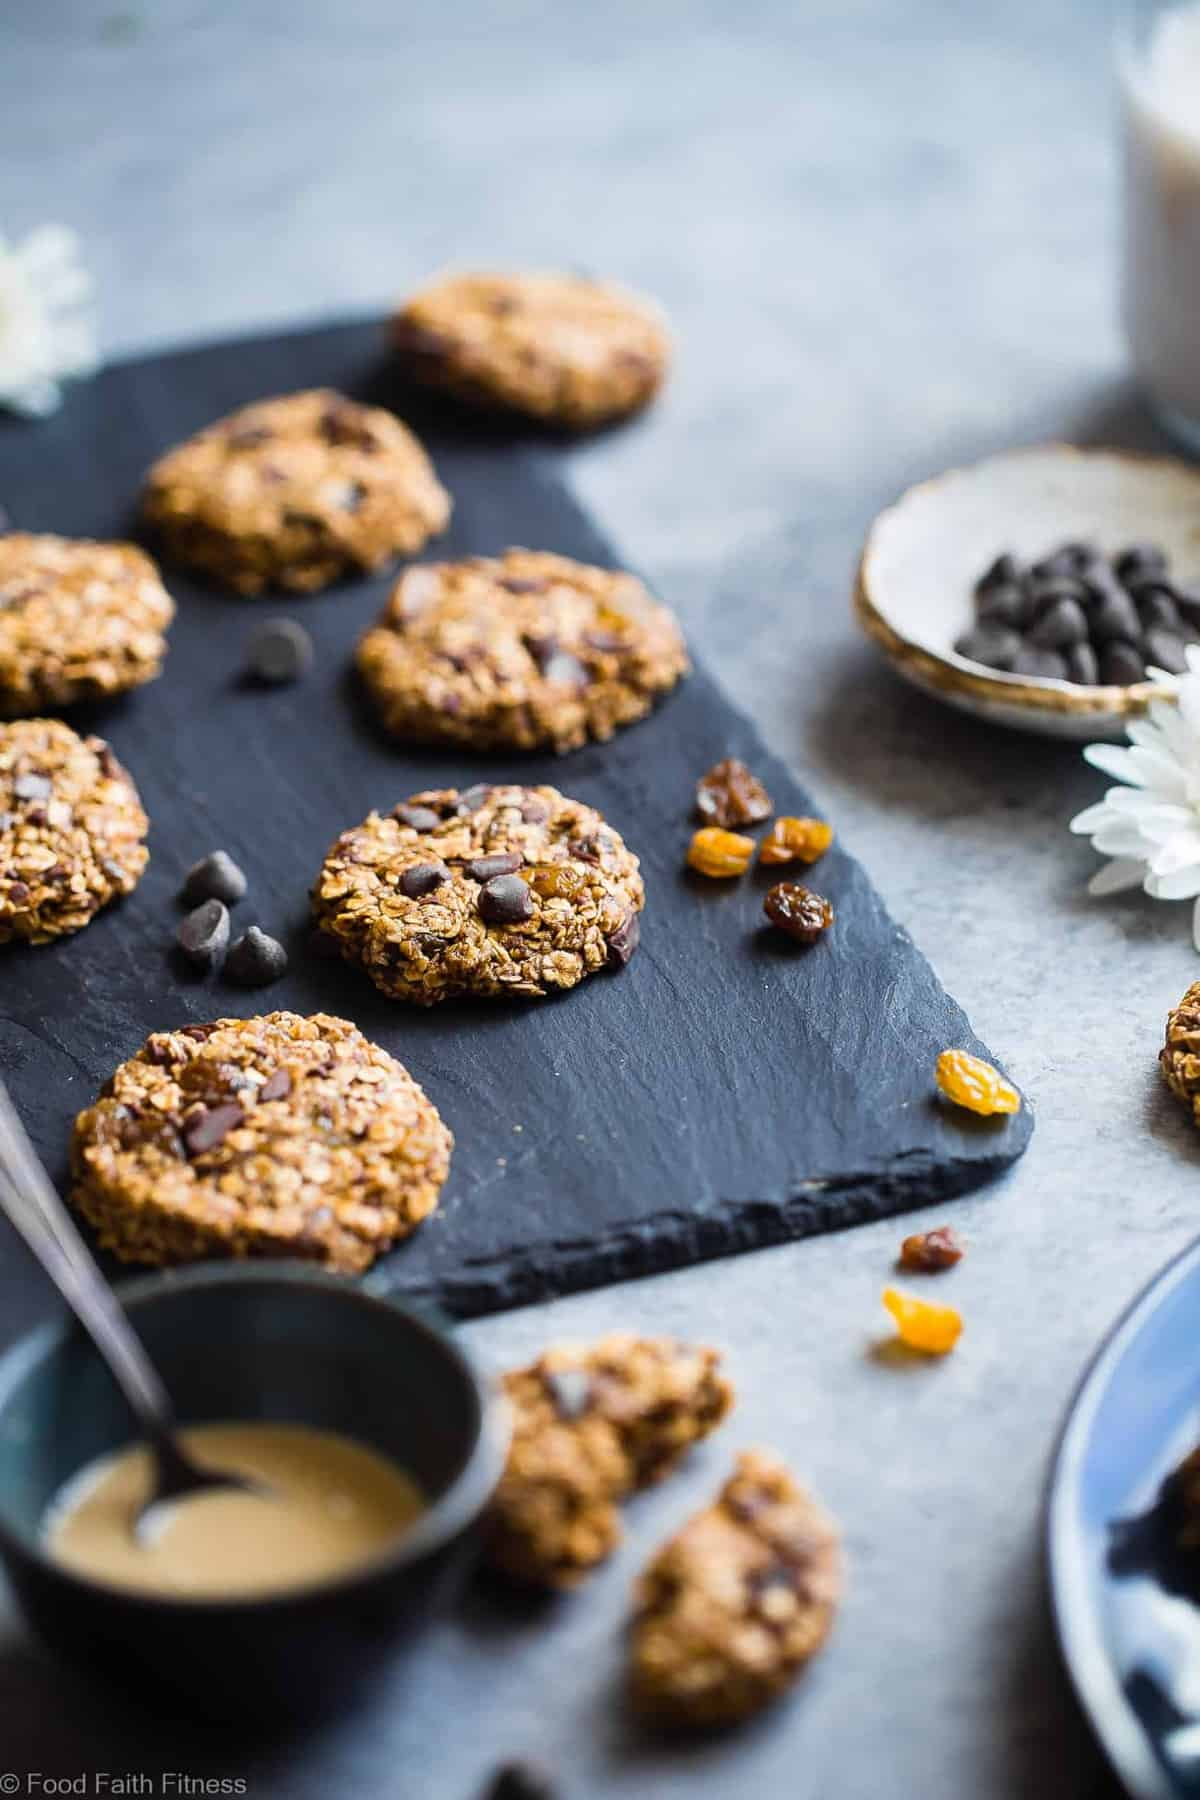 Vegan Gluten Free Oatmeal No Bake Cookies - These EASY, no bake oatmeal cookies have a surprise tahini twist, chocolate and notes of spicy cardamon and chewy golden raisins! A healthy, gluten/dairy/egg free treat for only 110 calories! | #Foodfaithfitness | #Vegan #NoBake #Healthy #ChocolateChip #Glutenfree